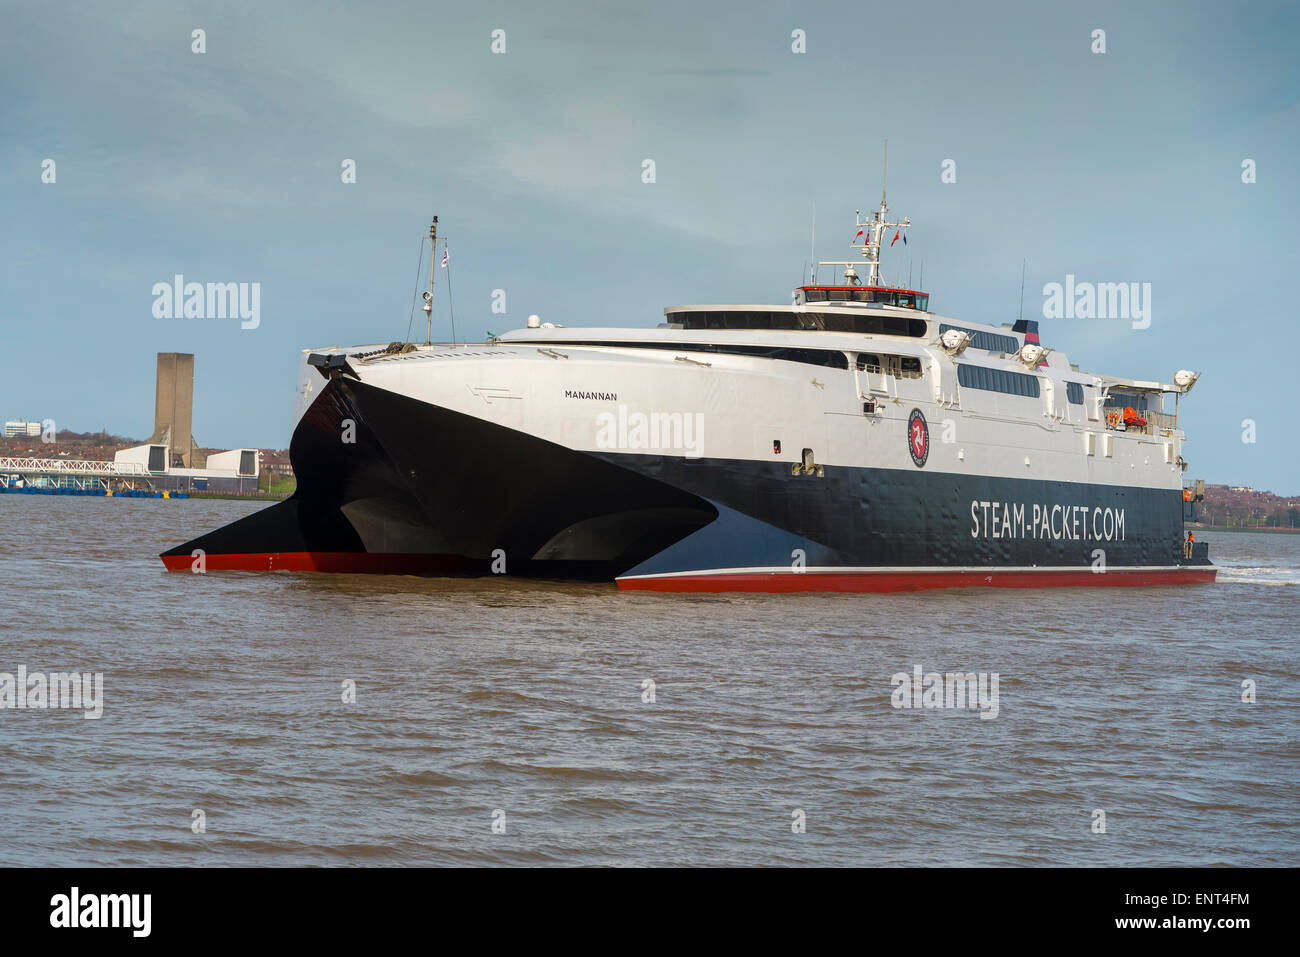 The Isle of Mann Steam Packet Company catamaran the Manannan in the river Mersey. IOMSP. High speed car ferry. - Stock Image